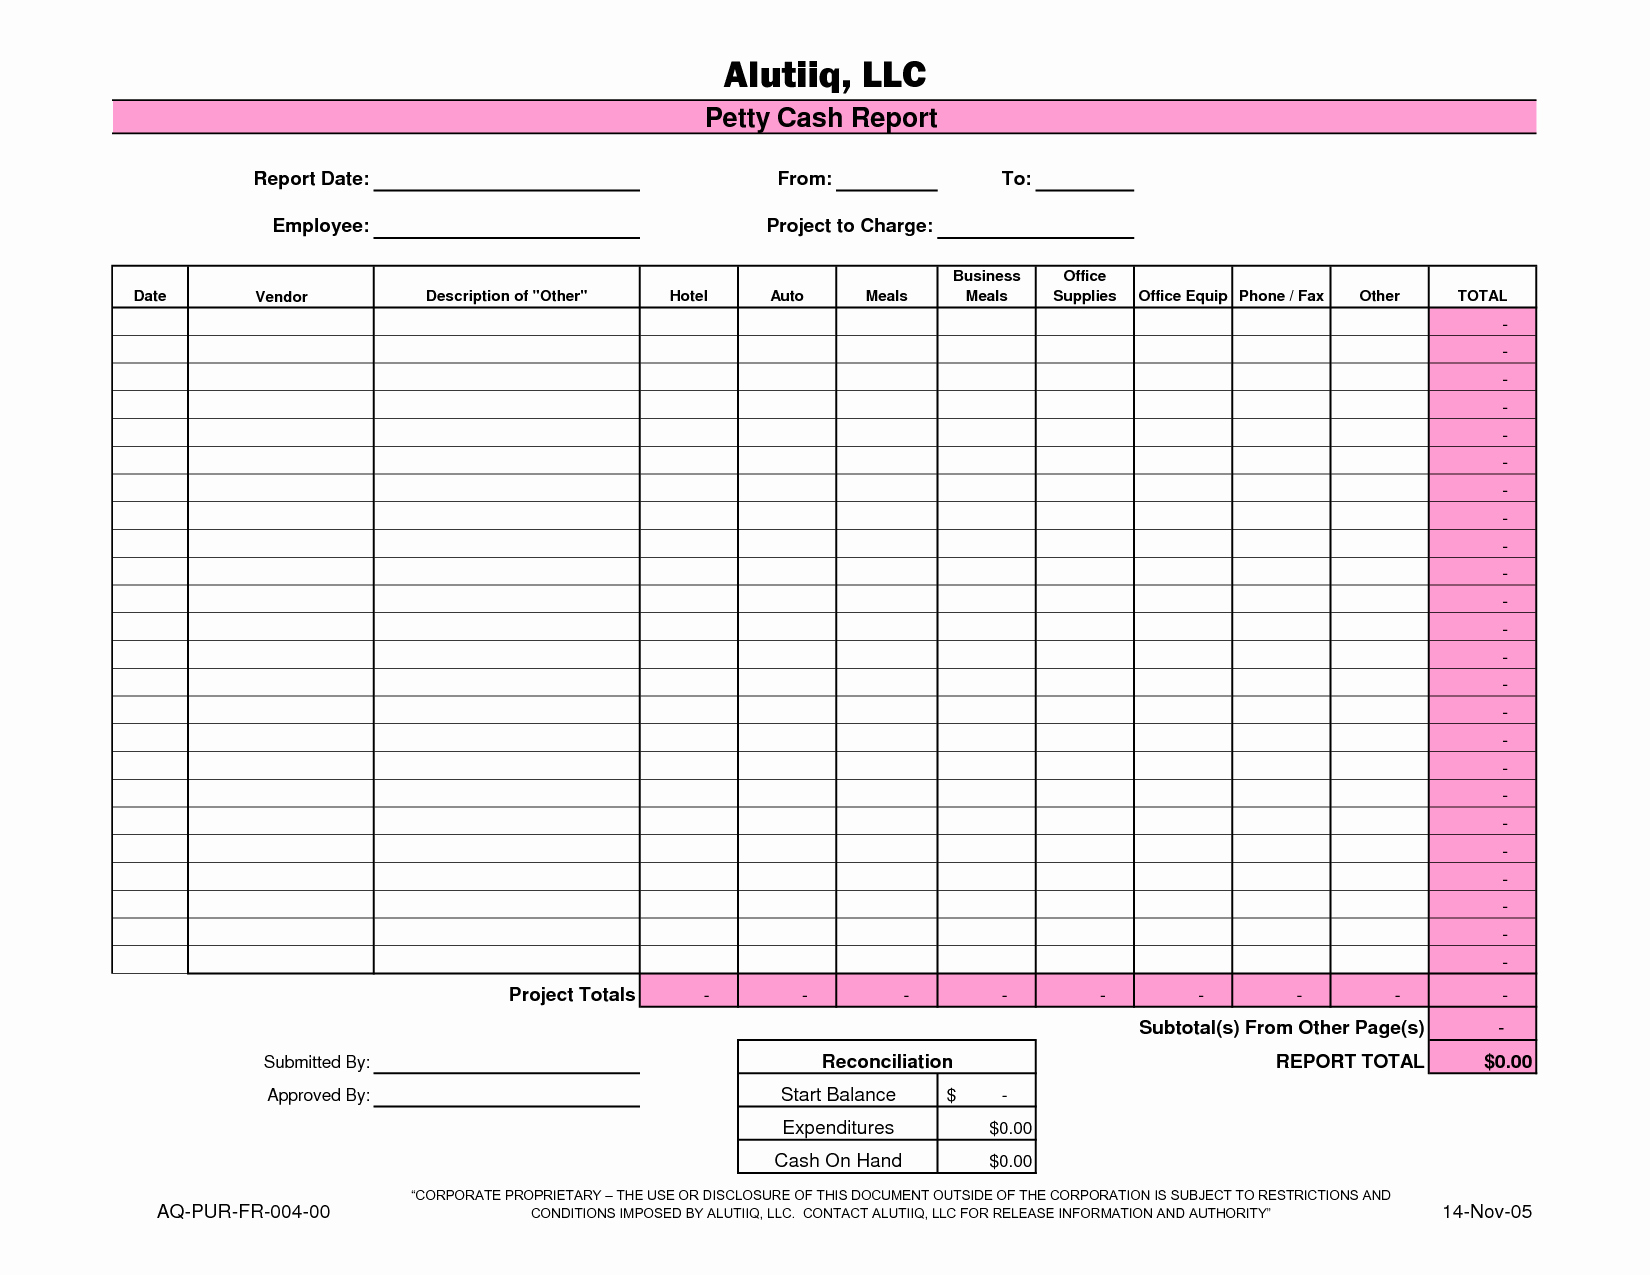 Expense Report Template Excel 2010 New Expense Report Template Excel 2010 Spreadsheet